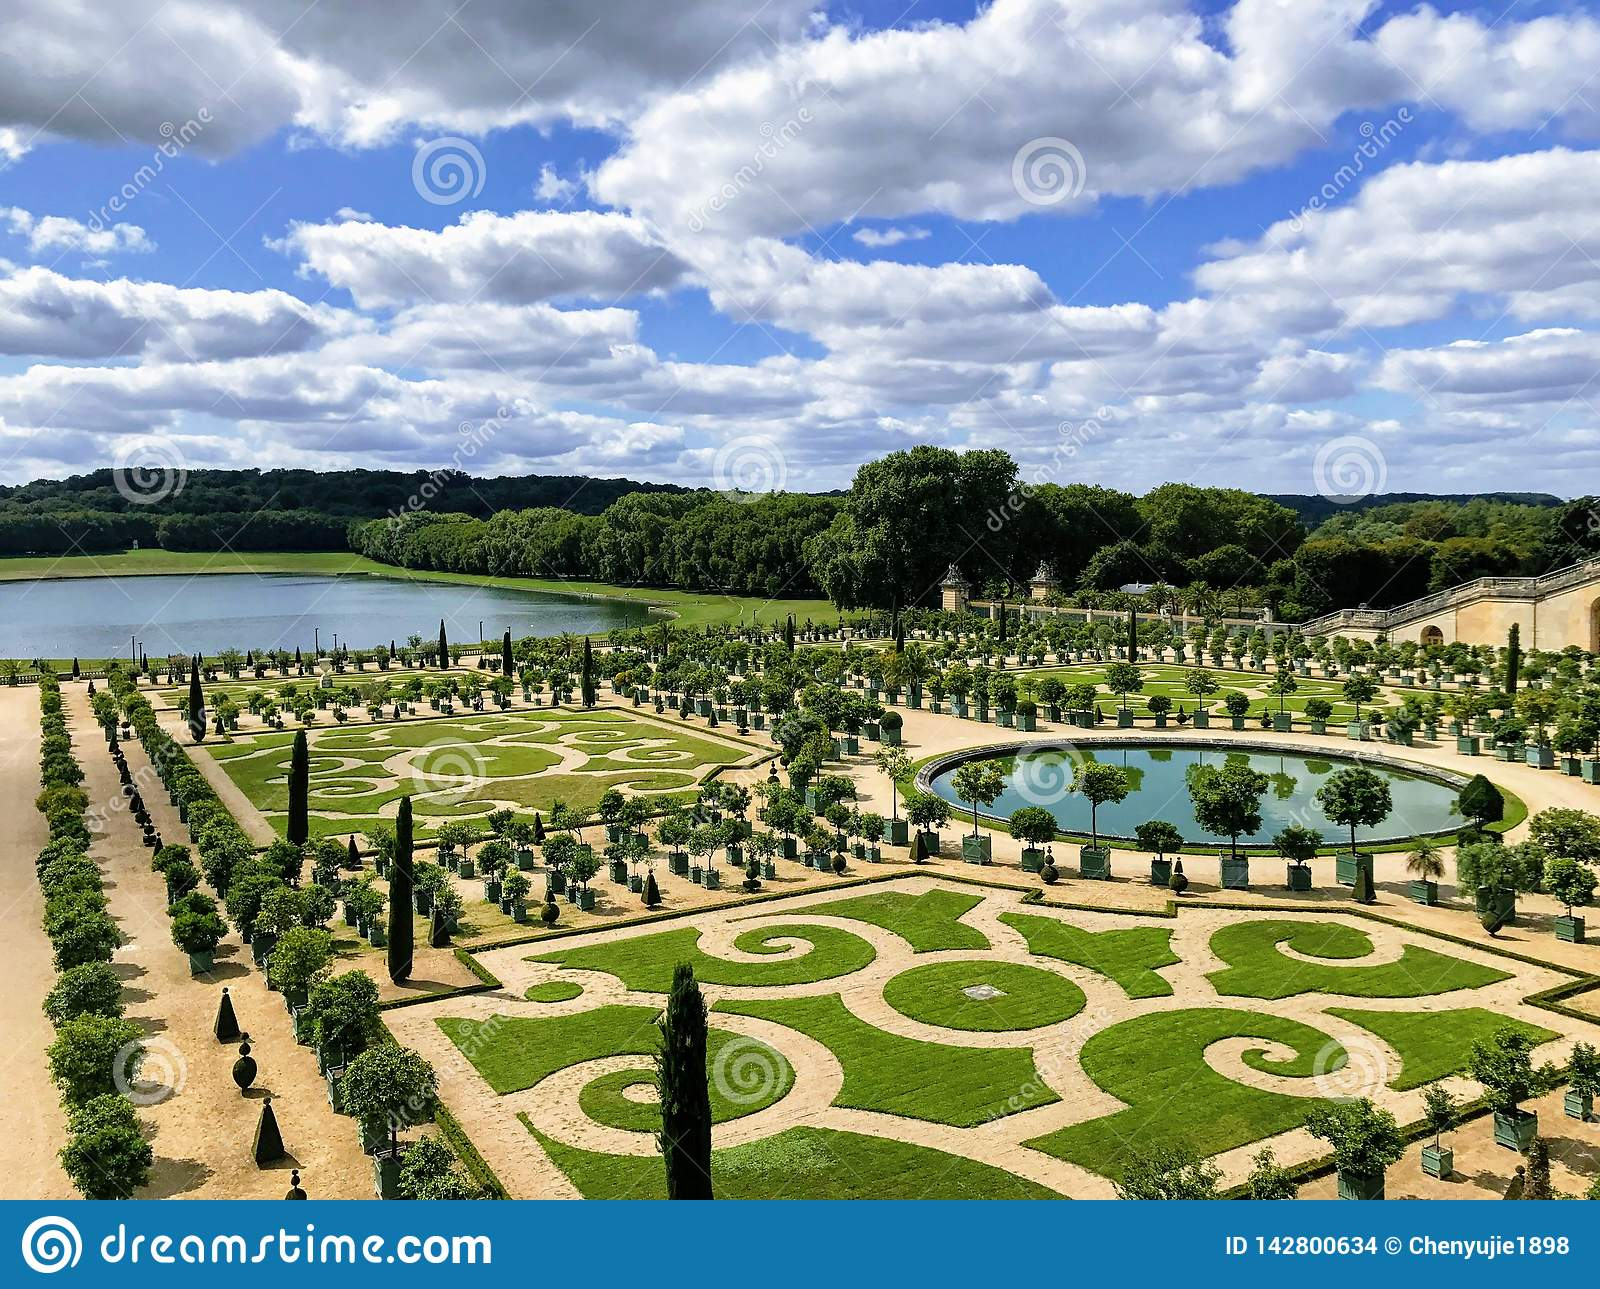 Gardens Of Versailles France 2